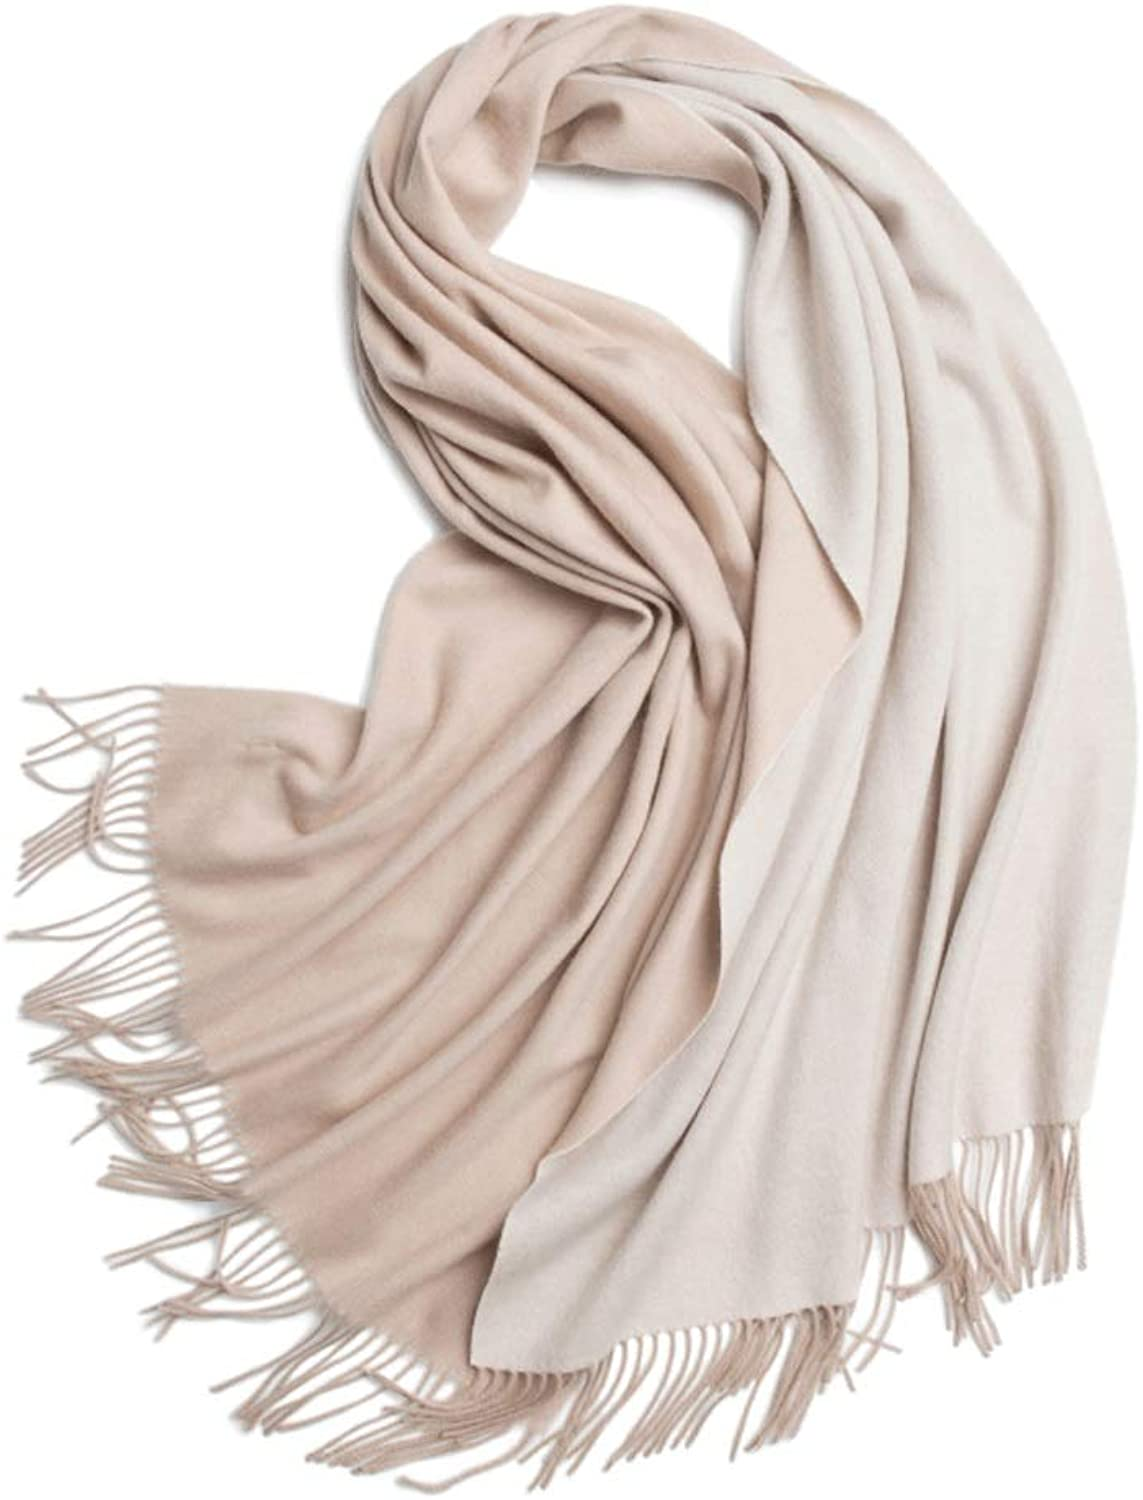 WXL Winter Scarf 200cm × 70cm DoubleSided Twocolor Woman Soft Warm Tassels Shawl V (color   Camel+Beige)